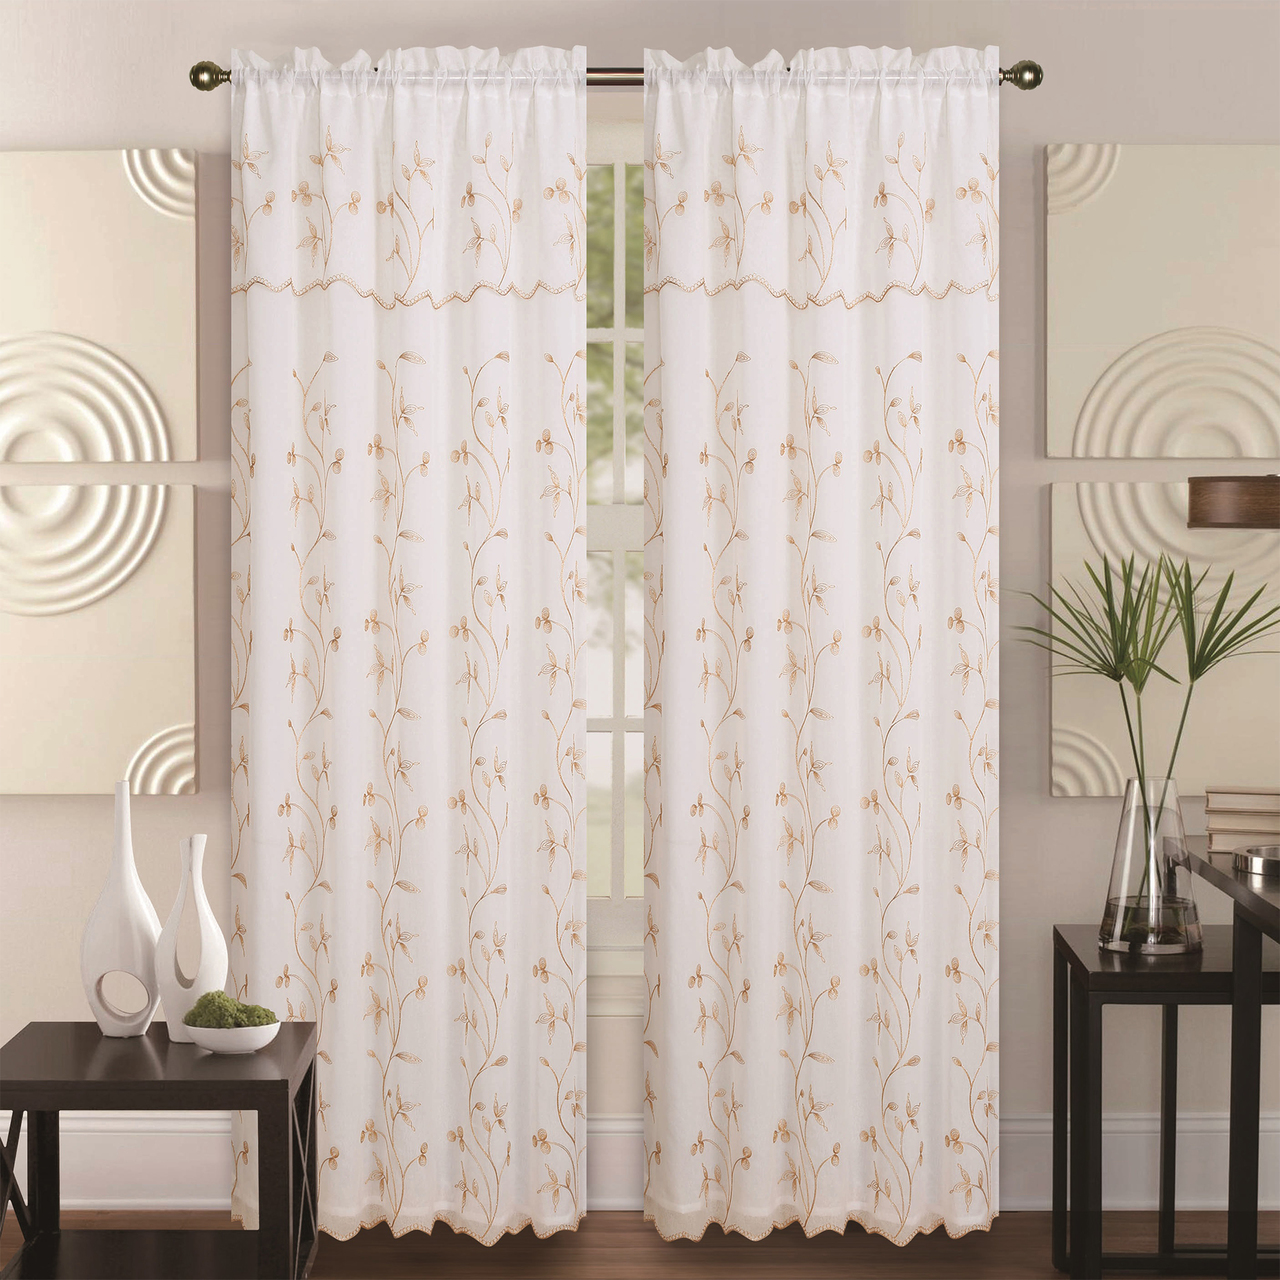 Double-Layer Embroidery Floral Vine Sheer Front Rod Pocket Decorative Curtain Panel 55x84 Inch with 18 Inch Valance, Alma Single Drape Panel (Beige/Gold)